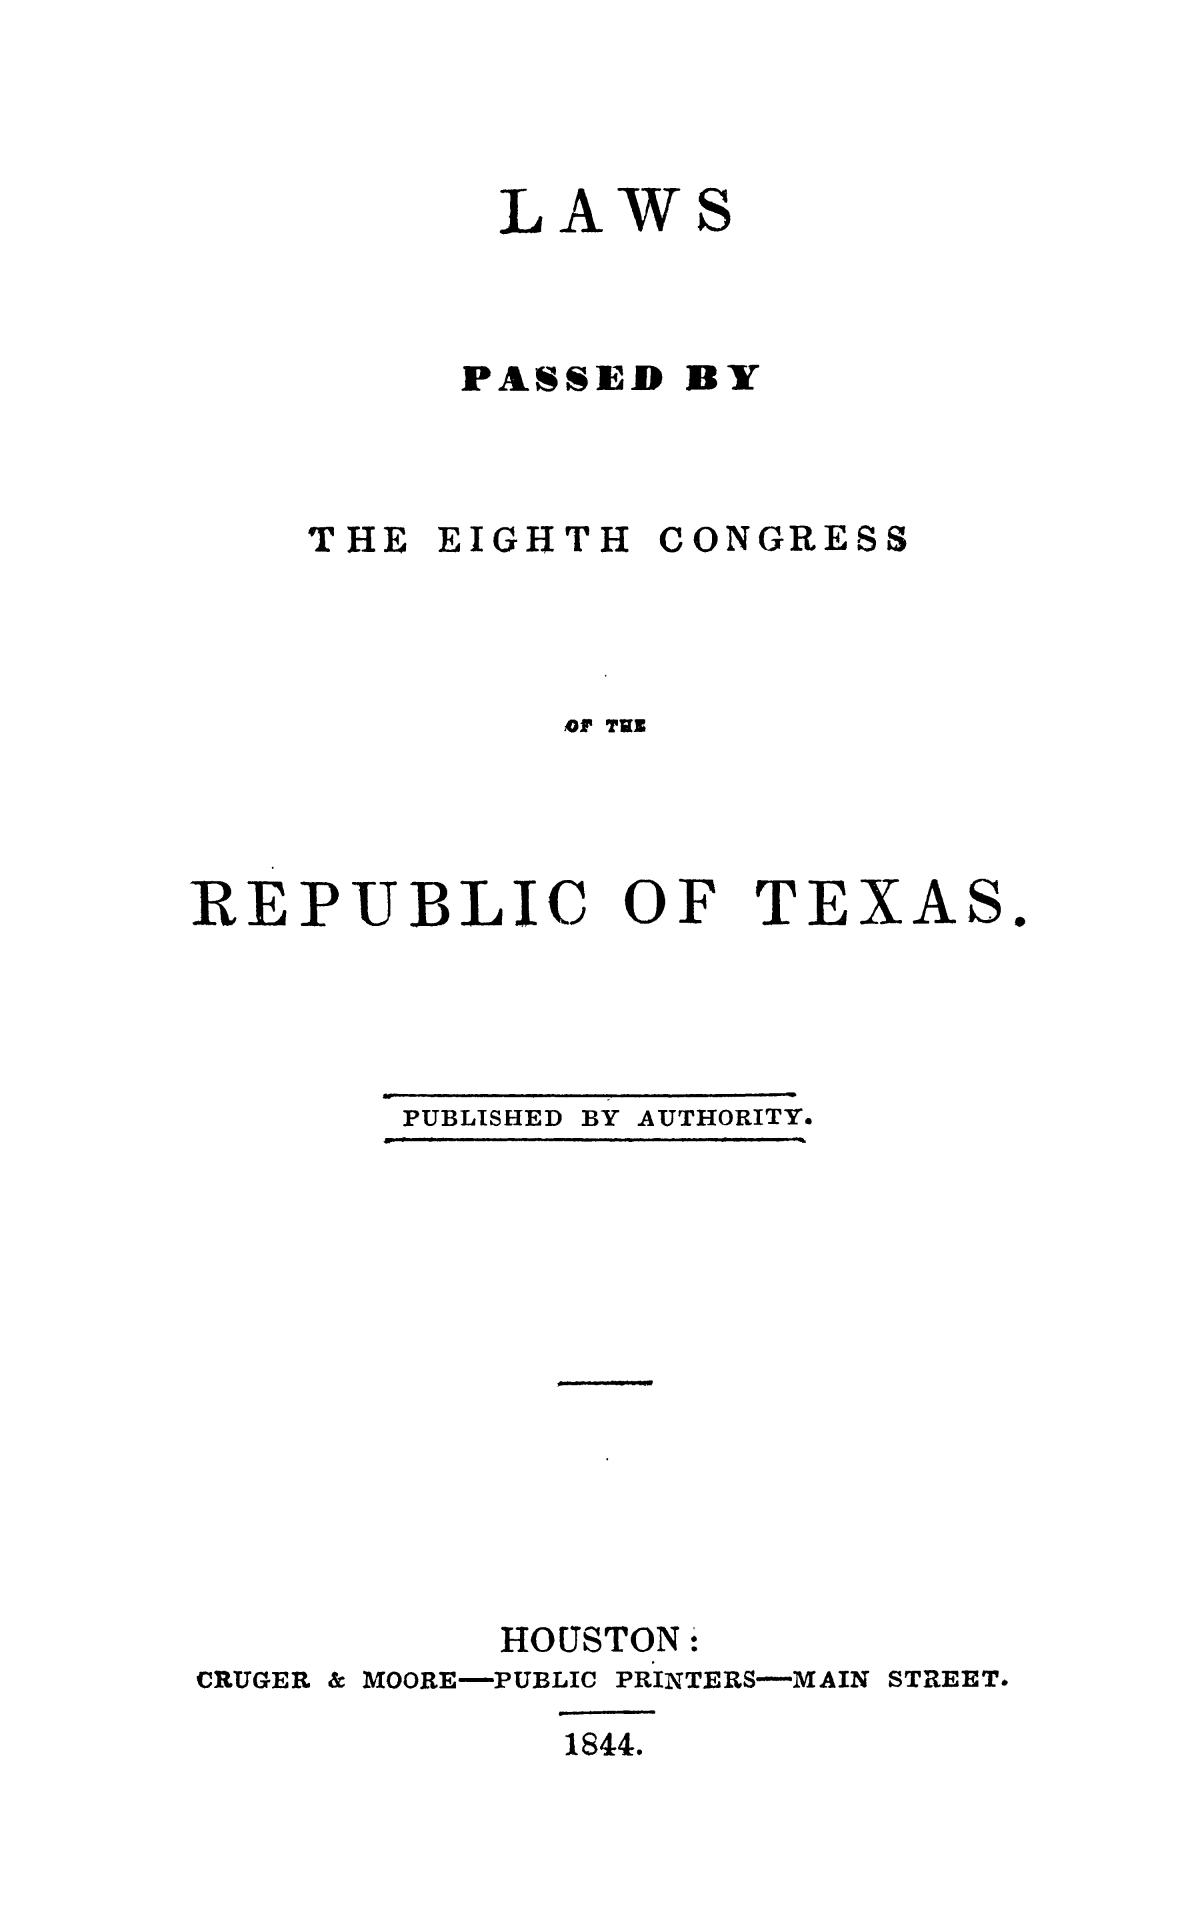 Laws Passed by the Eighth Congress of the Republic of Texas.                                                                                                      Title Page